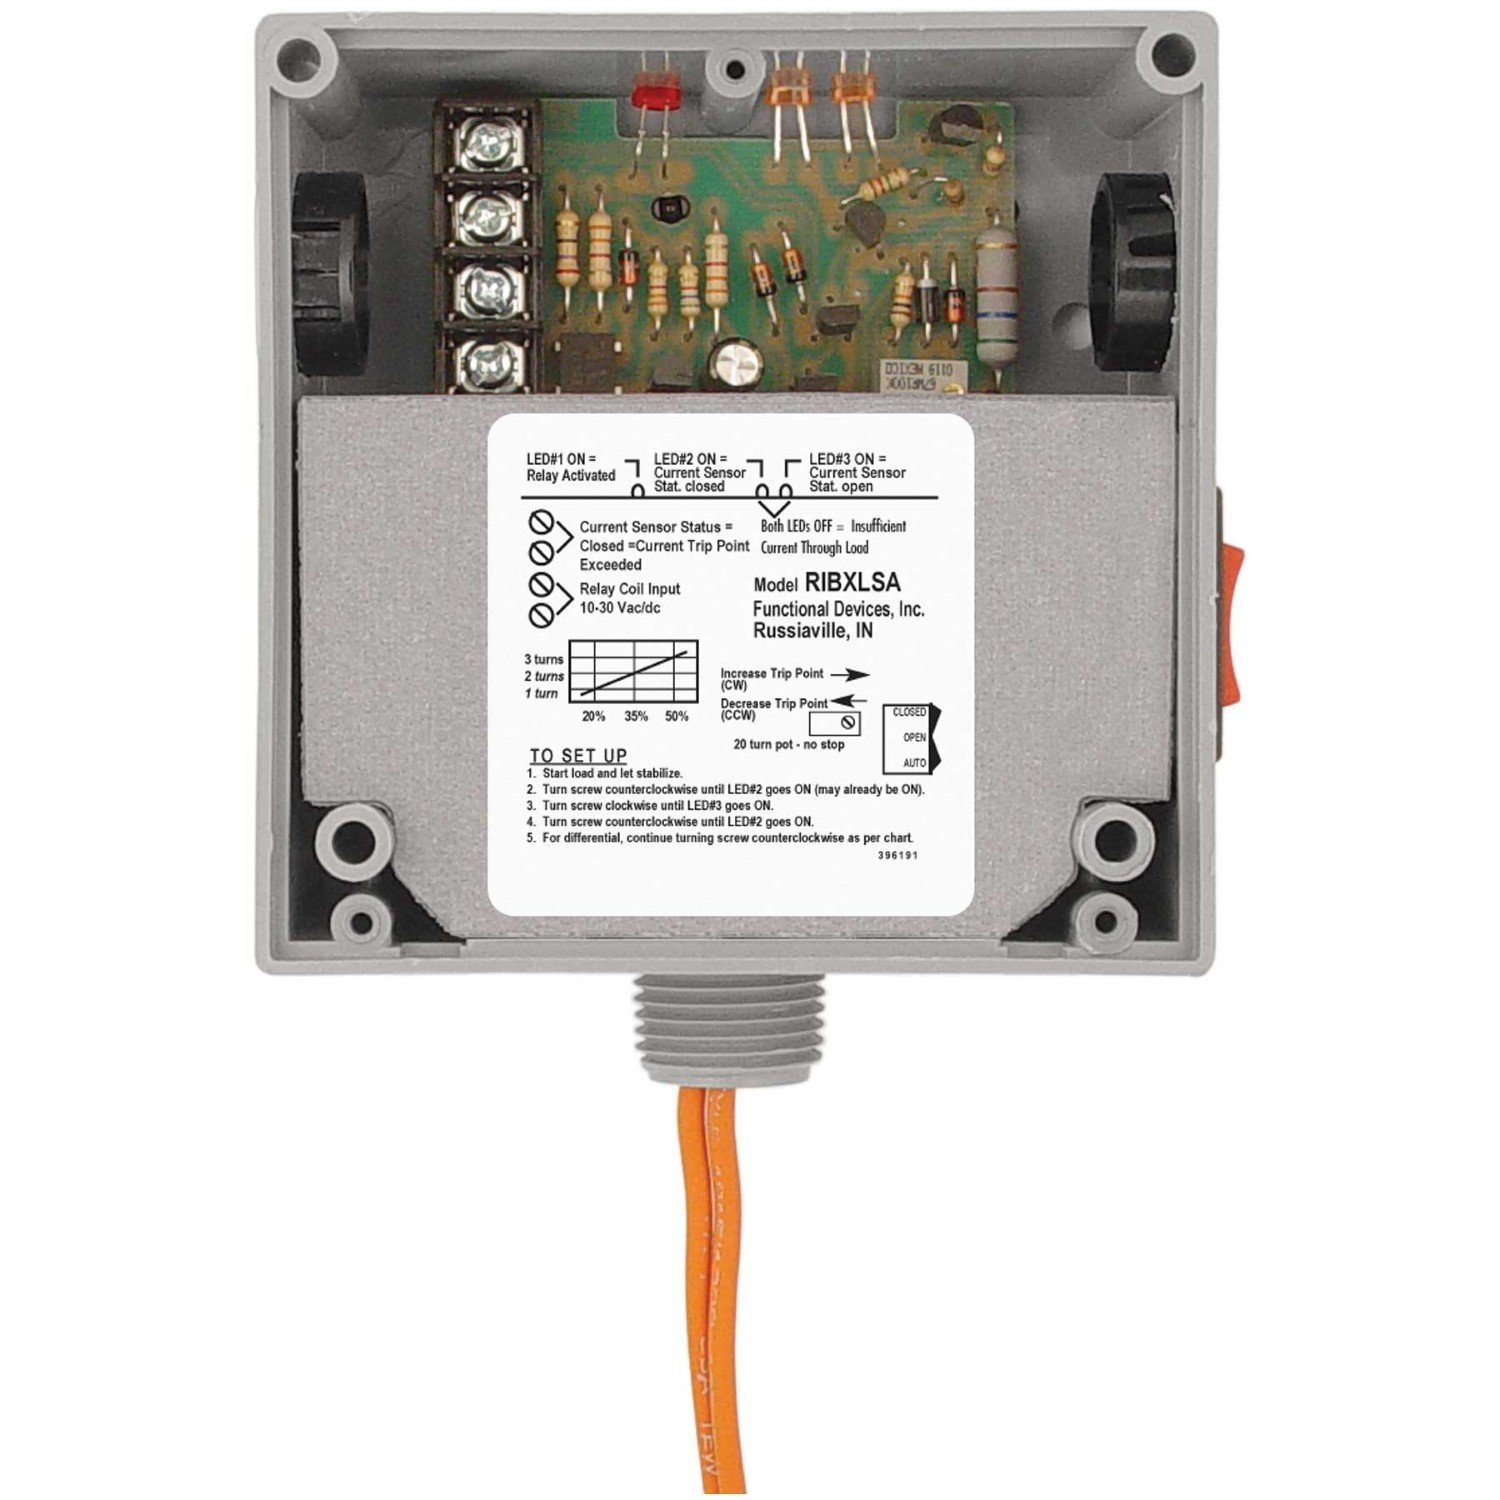 Functional Devices Ribxlsa Enclosed 10 Amp Relay Current Switch Input Combination Adjustable And Override Electronic Relays Industrial